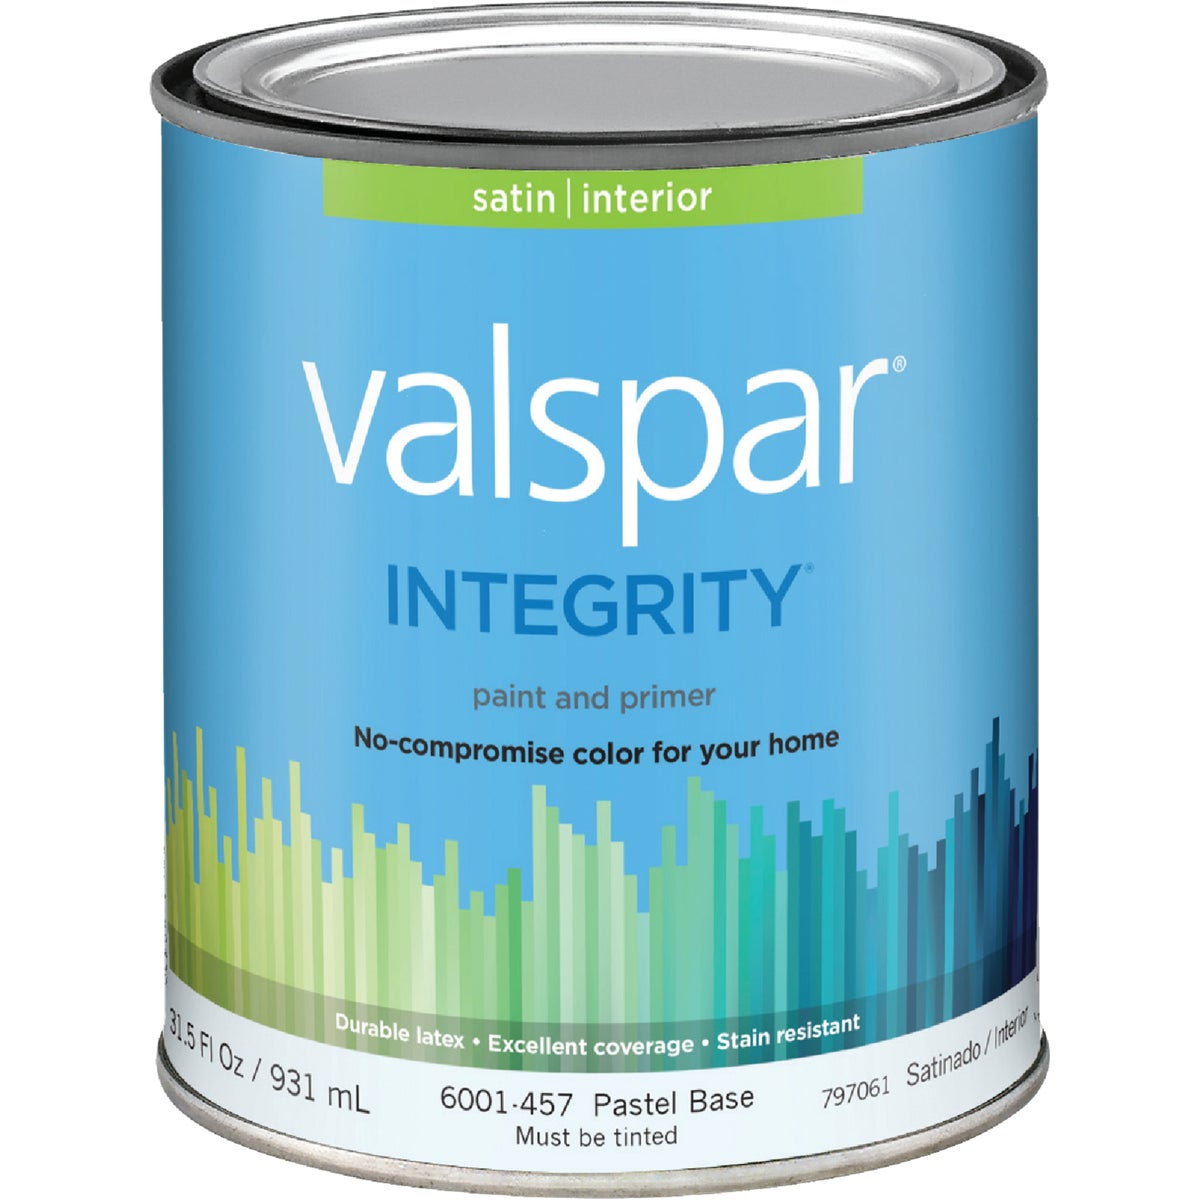 INT SAT PASTEL BS PAINT - 004.6001457.005 by Valspar Corp